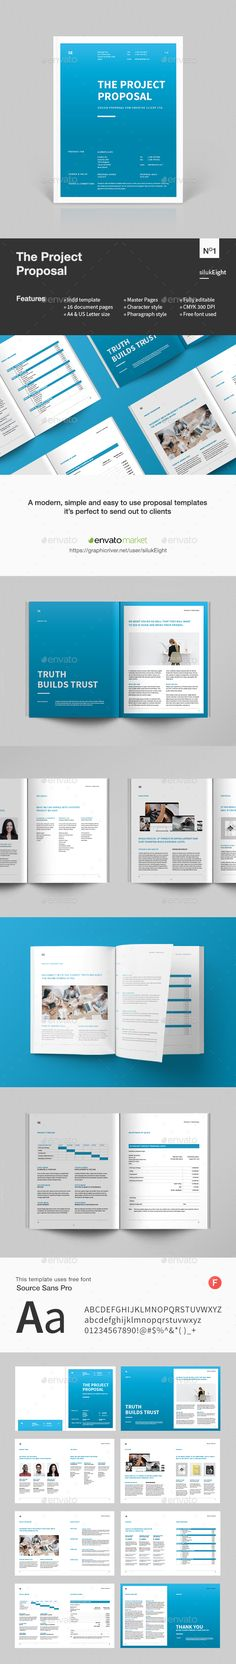 Web Design Proposal  Proposals Proposal Templates And Modern Web